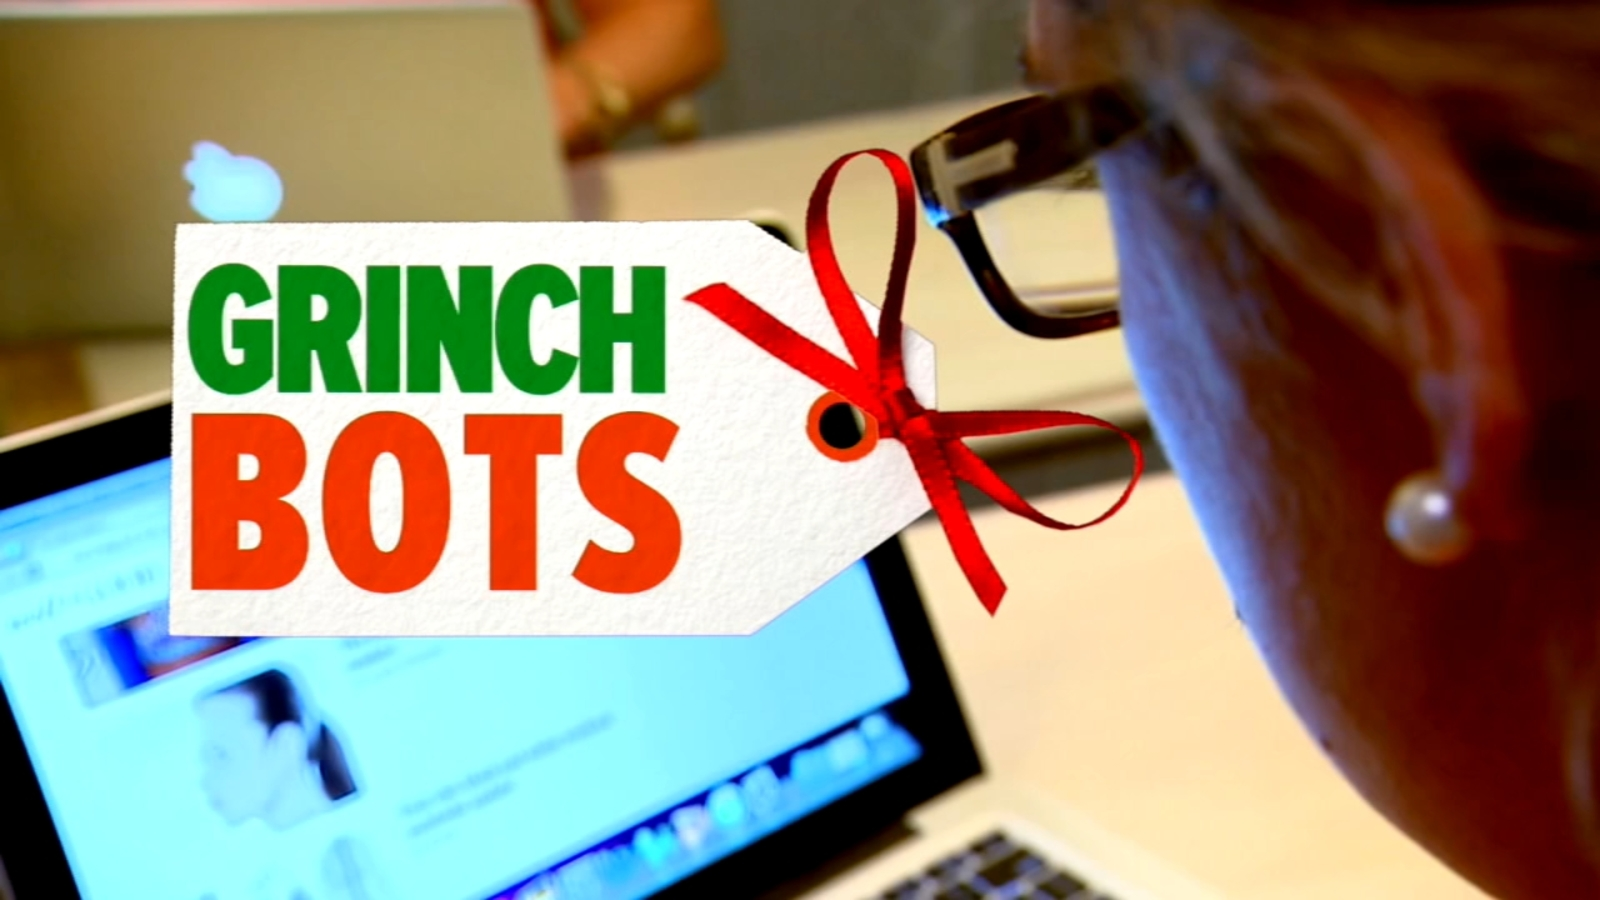 Grinch bots' behind 6,000% markups on hot holiday toys and